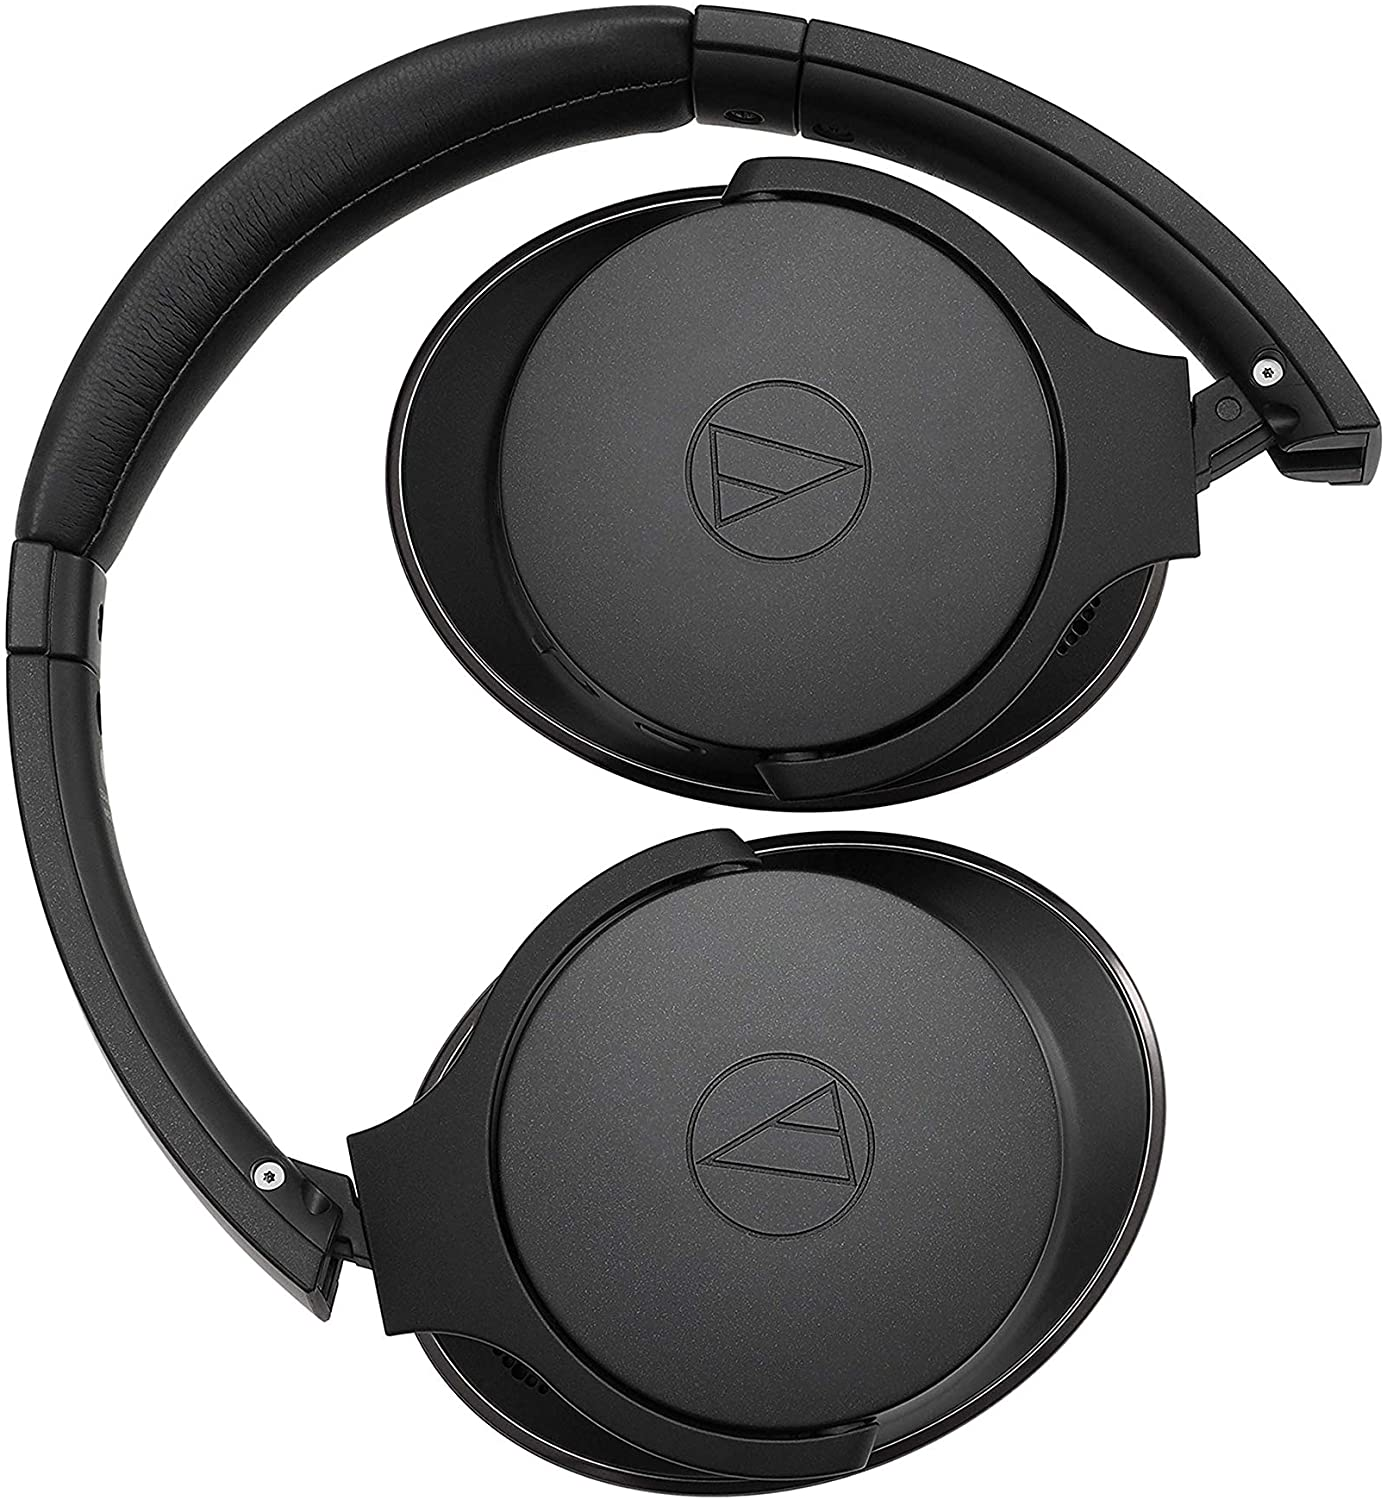 Audio Technica ATH-ANC900BT